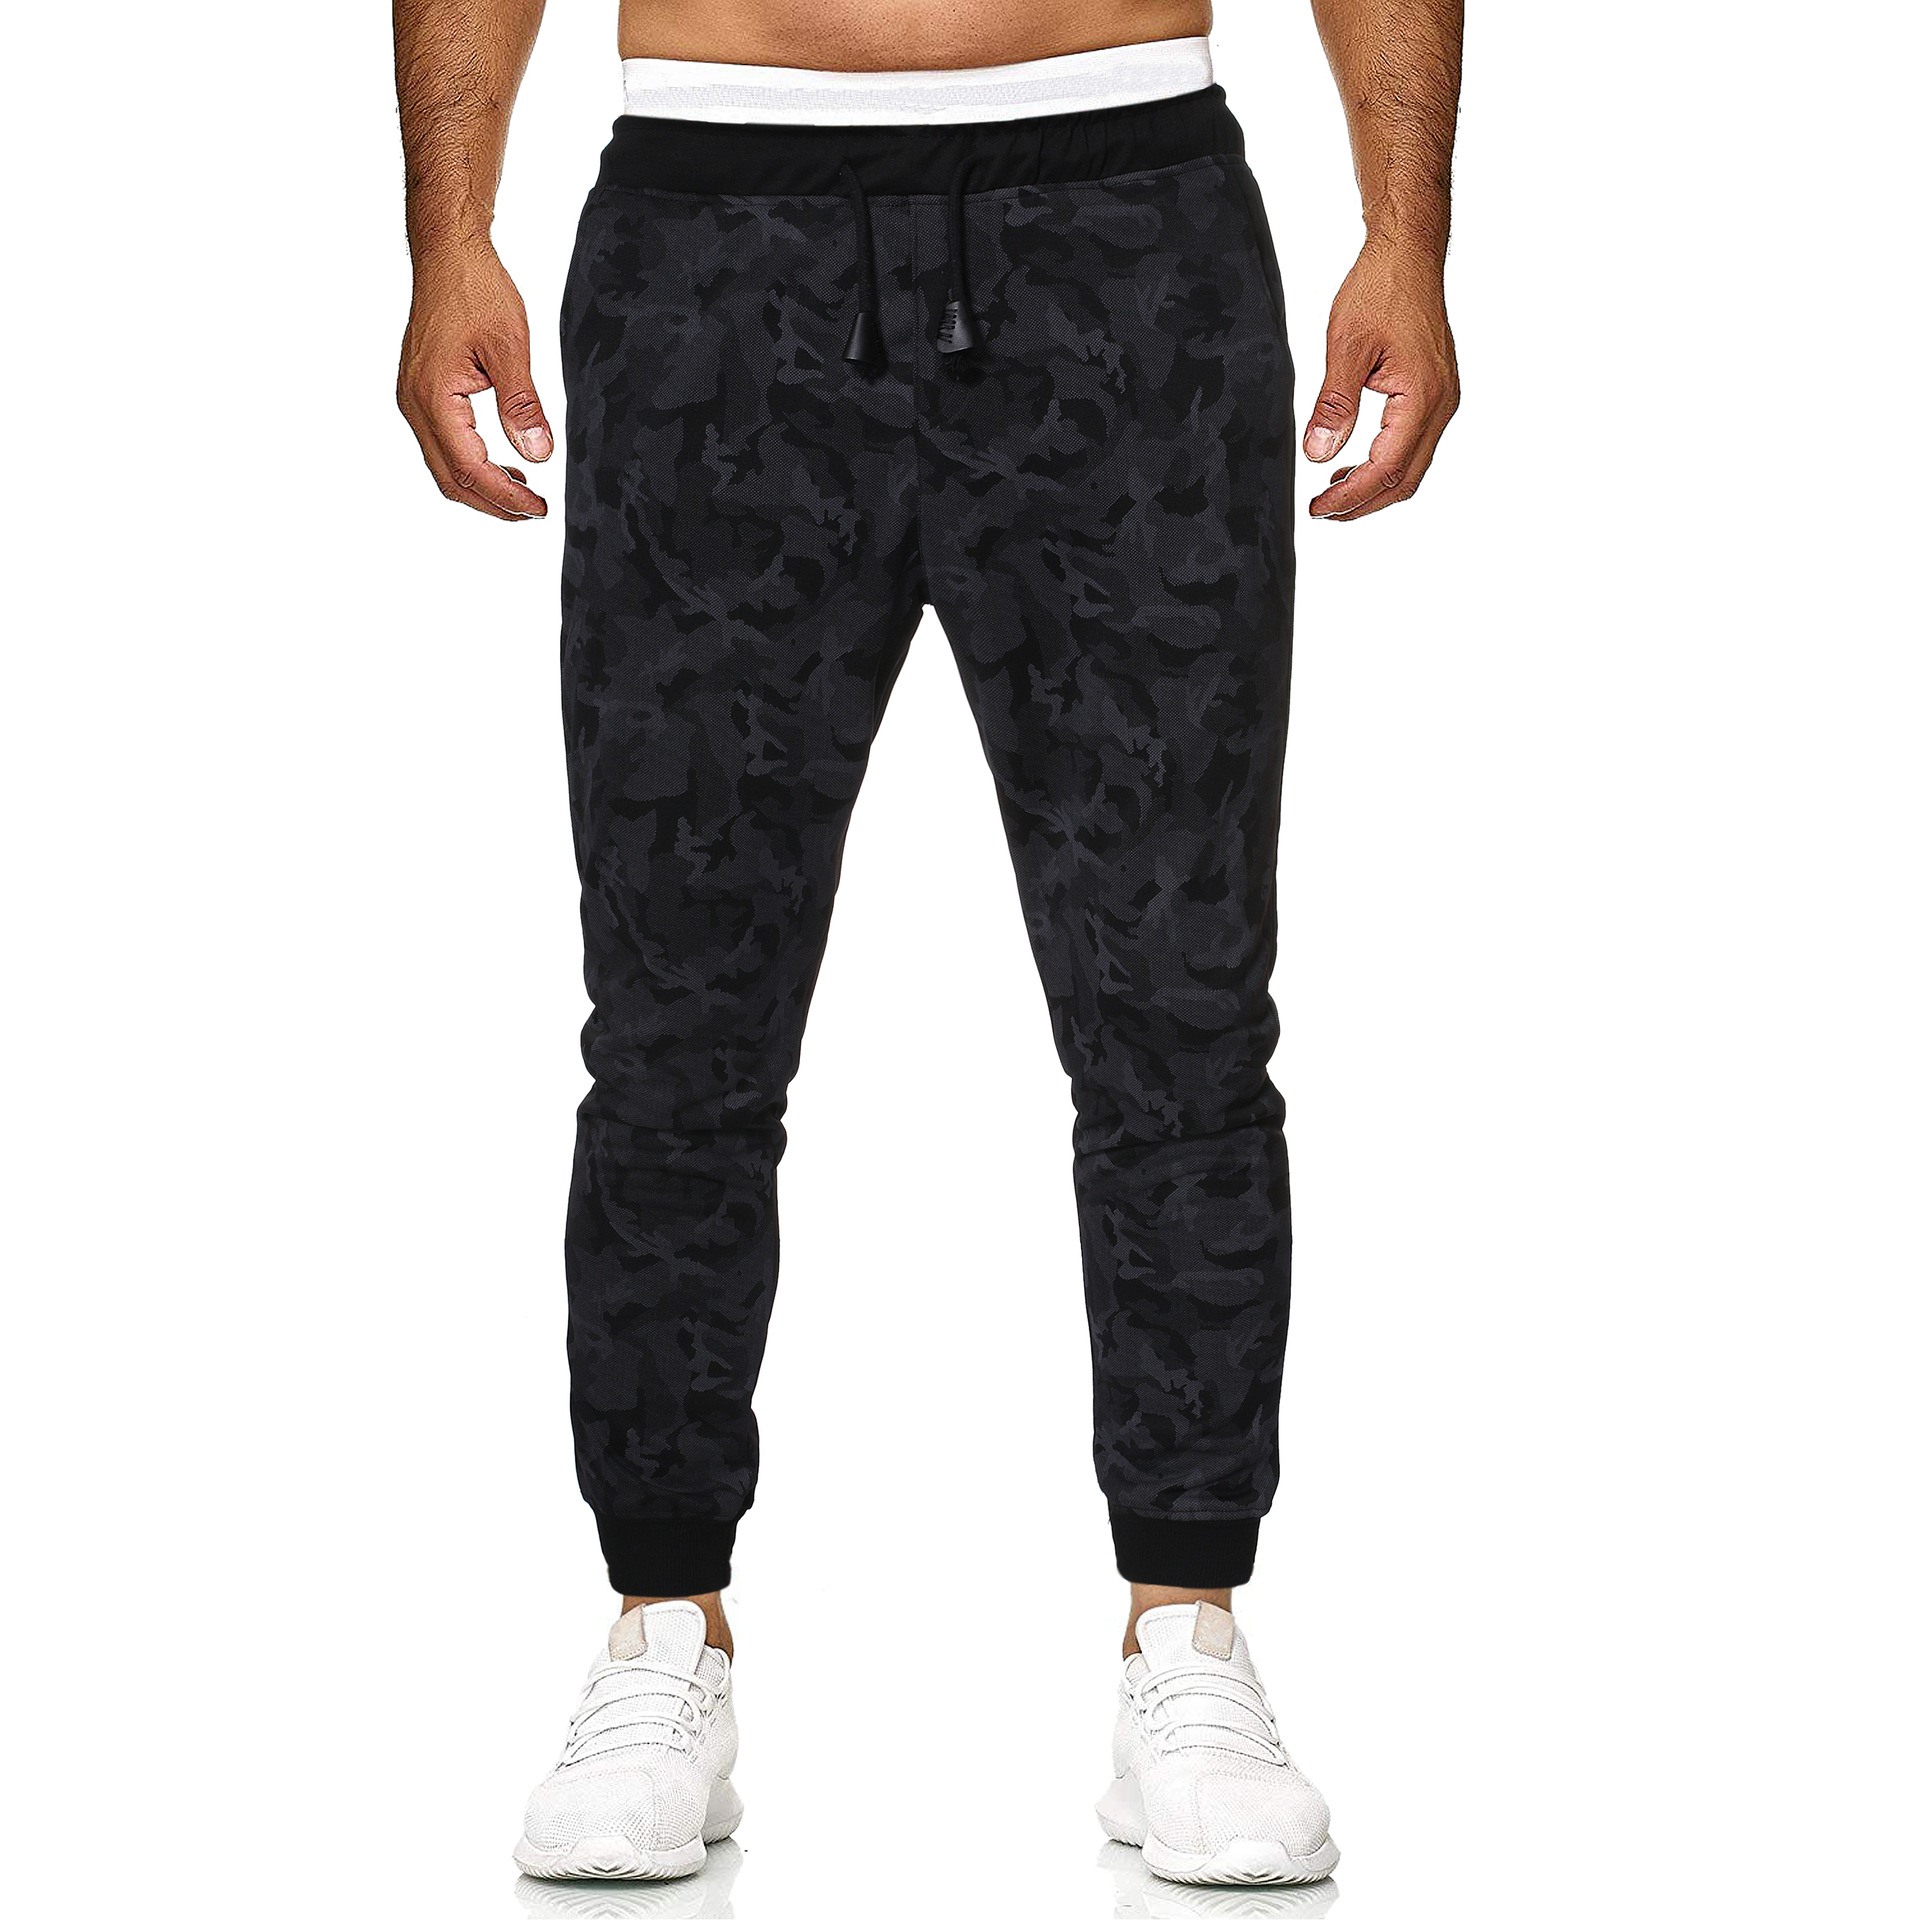 2019 Summer Foreign Trade New Style Men Fashion Camouflage Casual Sports Pants Large Size With Drawstring Harem Pants Beam Leg T